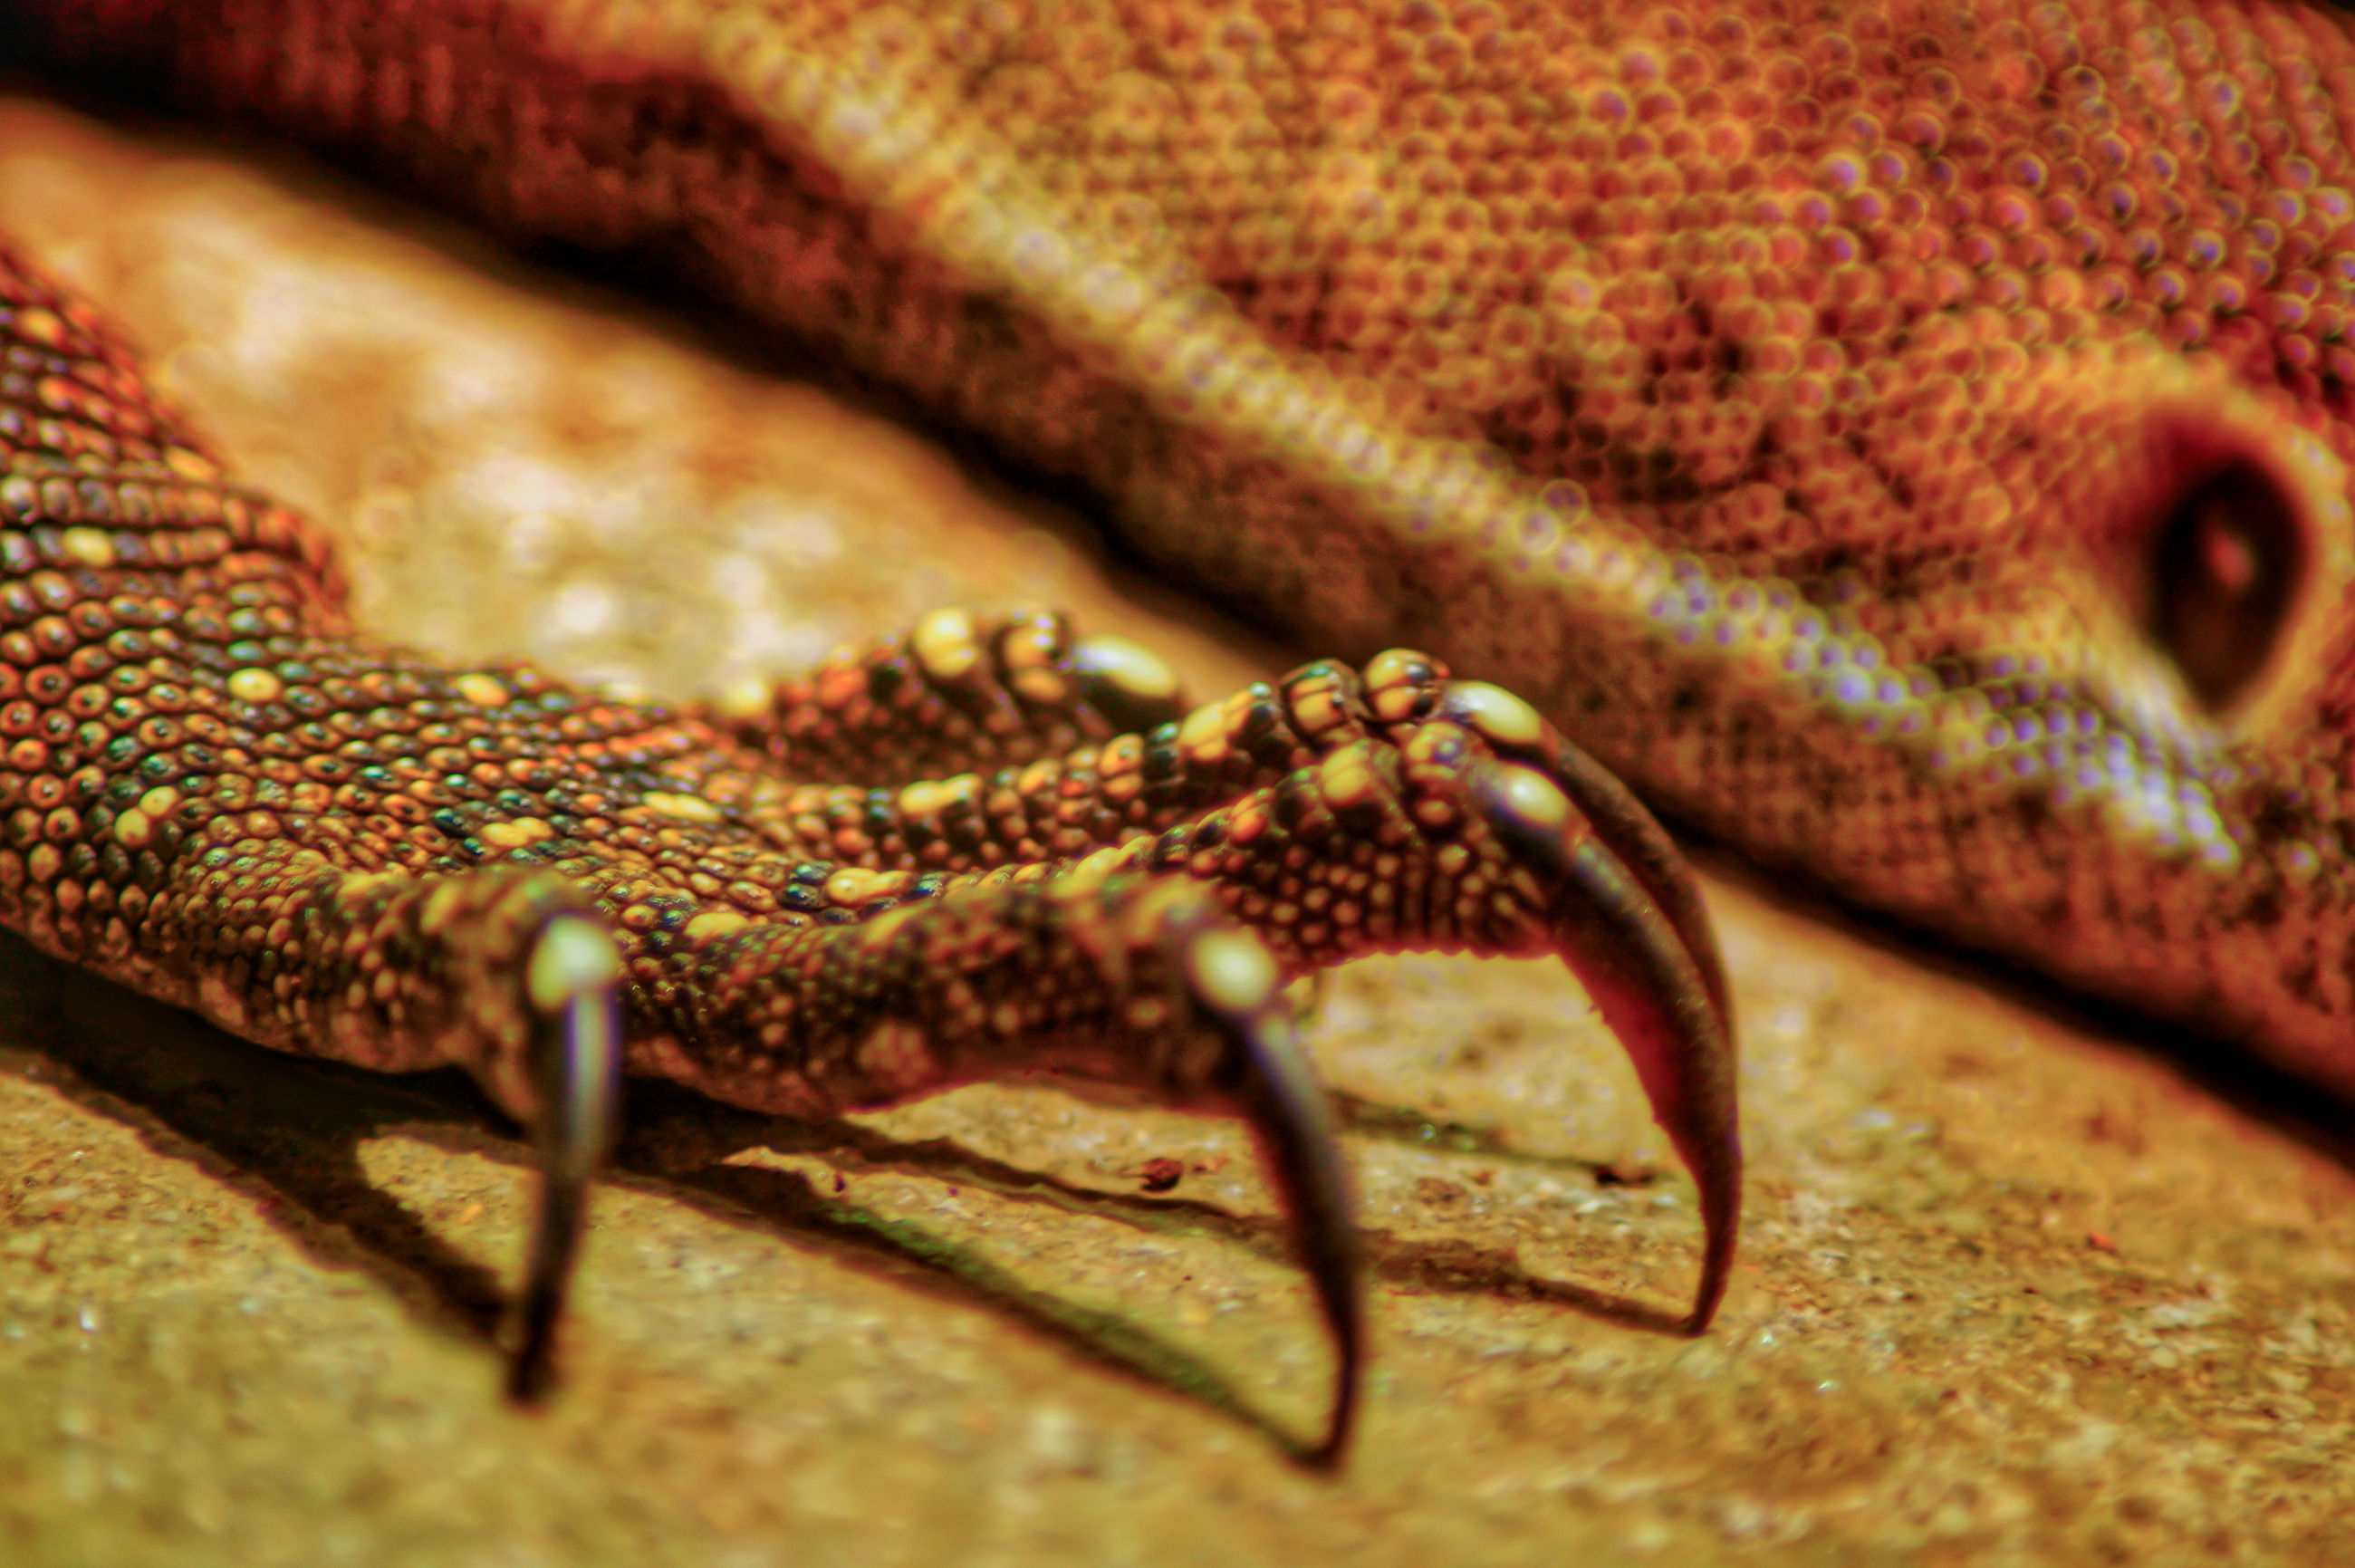 animal themes, animals in the wild, wildlife, one animal, lizard, reptile, selective focus, insect, zoology, close-up, arthropod, snake, animal wildlife, animal eye, gecko, green color, nature, invertebrate